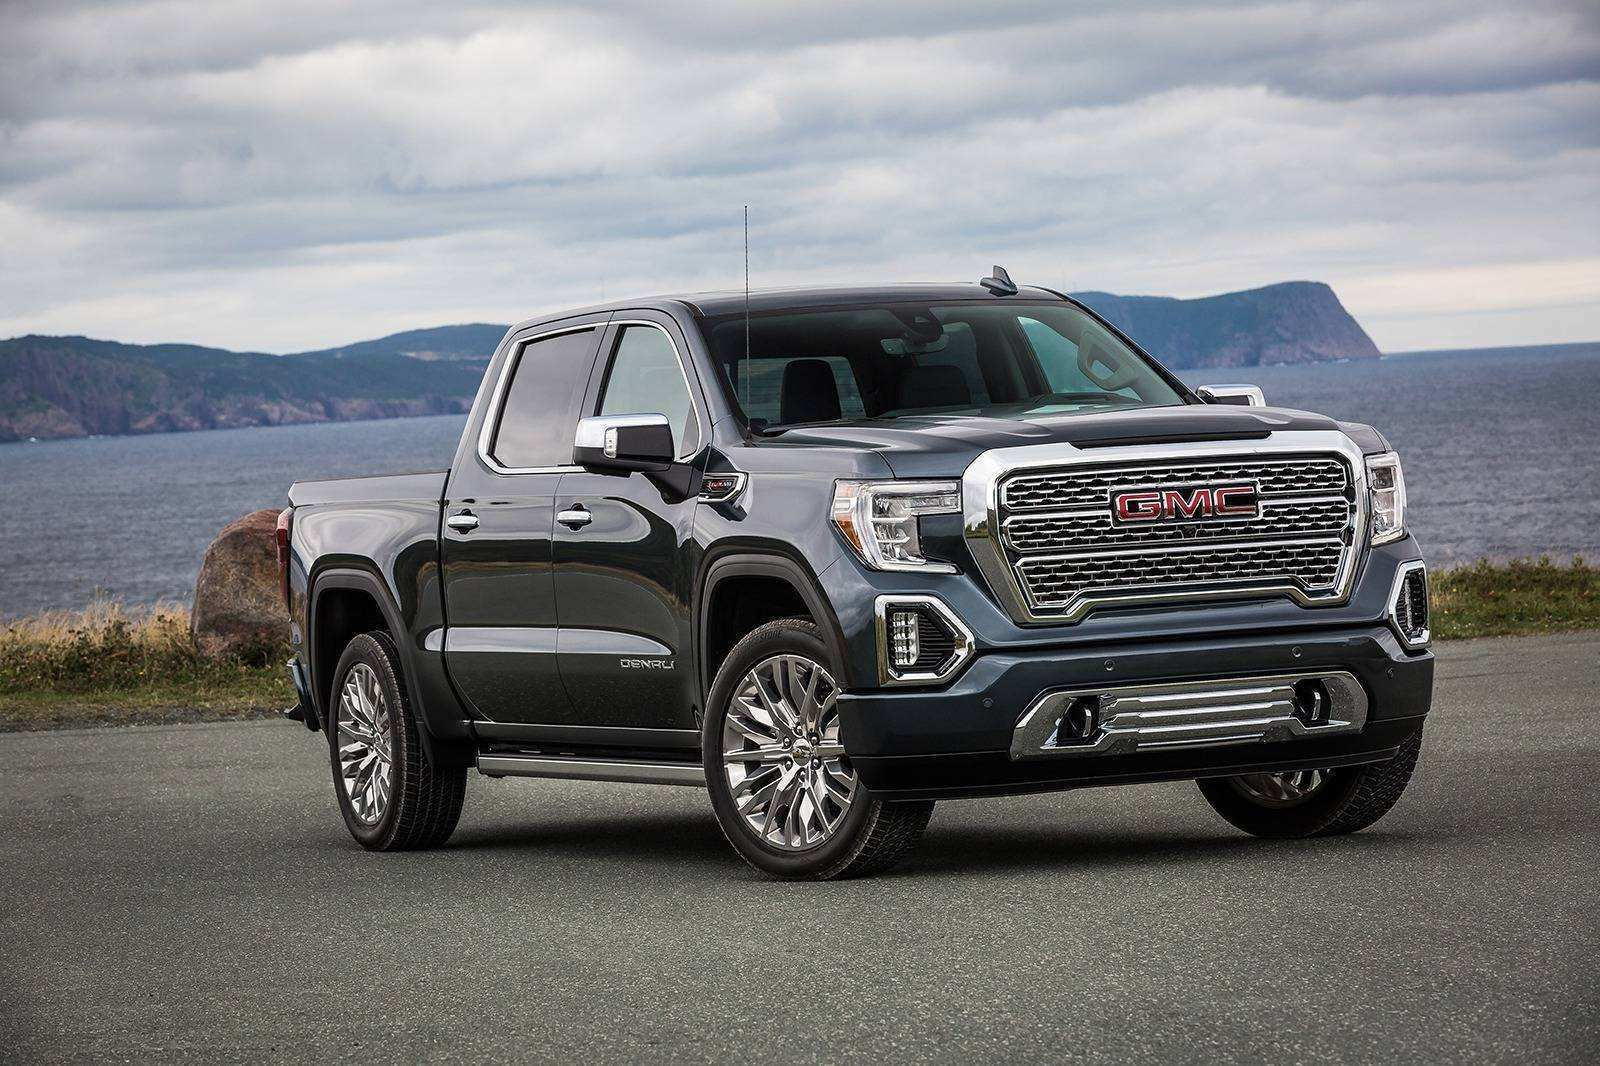 75 All New New 2019 Gmc Forum Engine First Drive with New 2019 Gmc Forum Engine